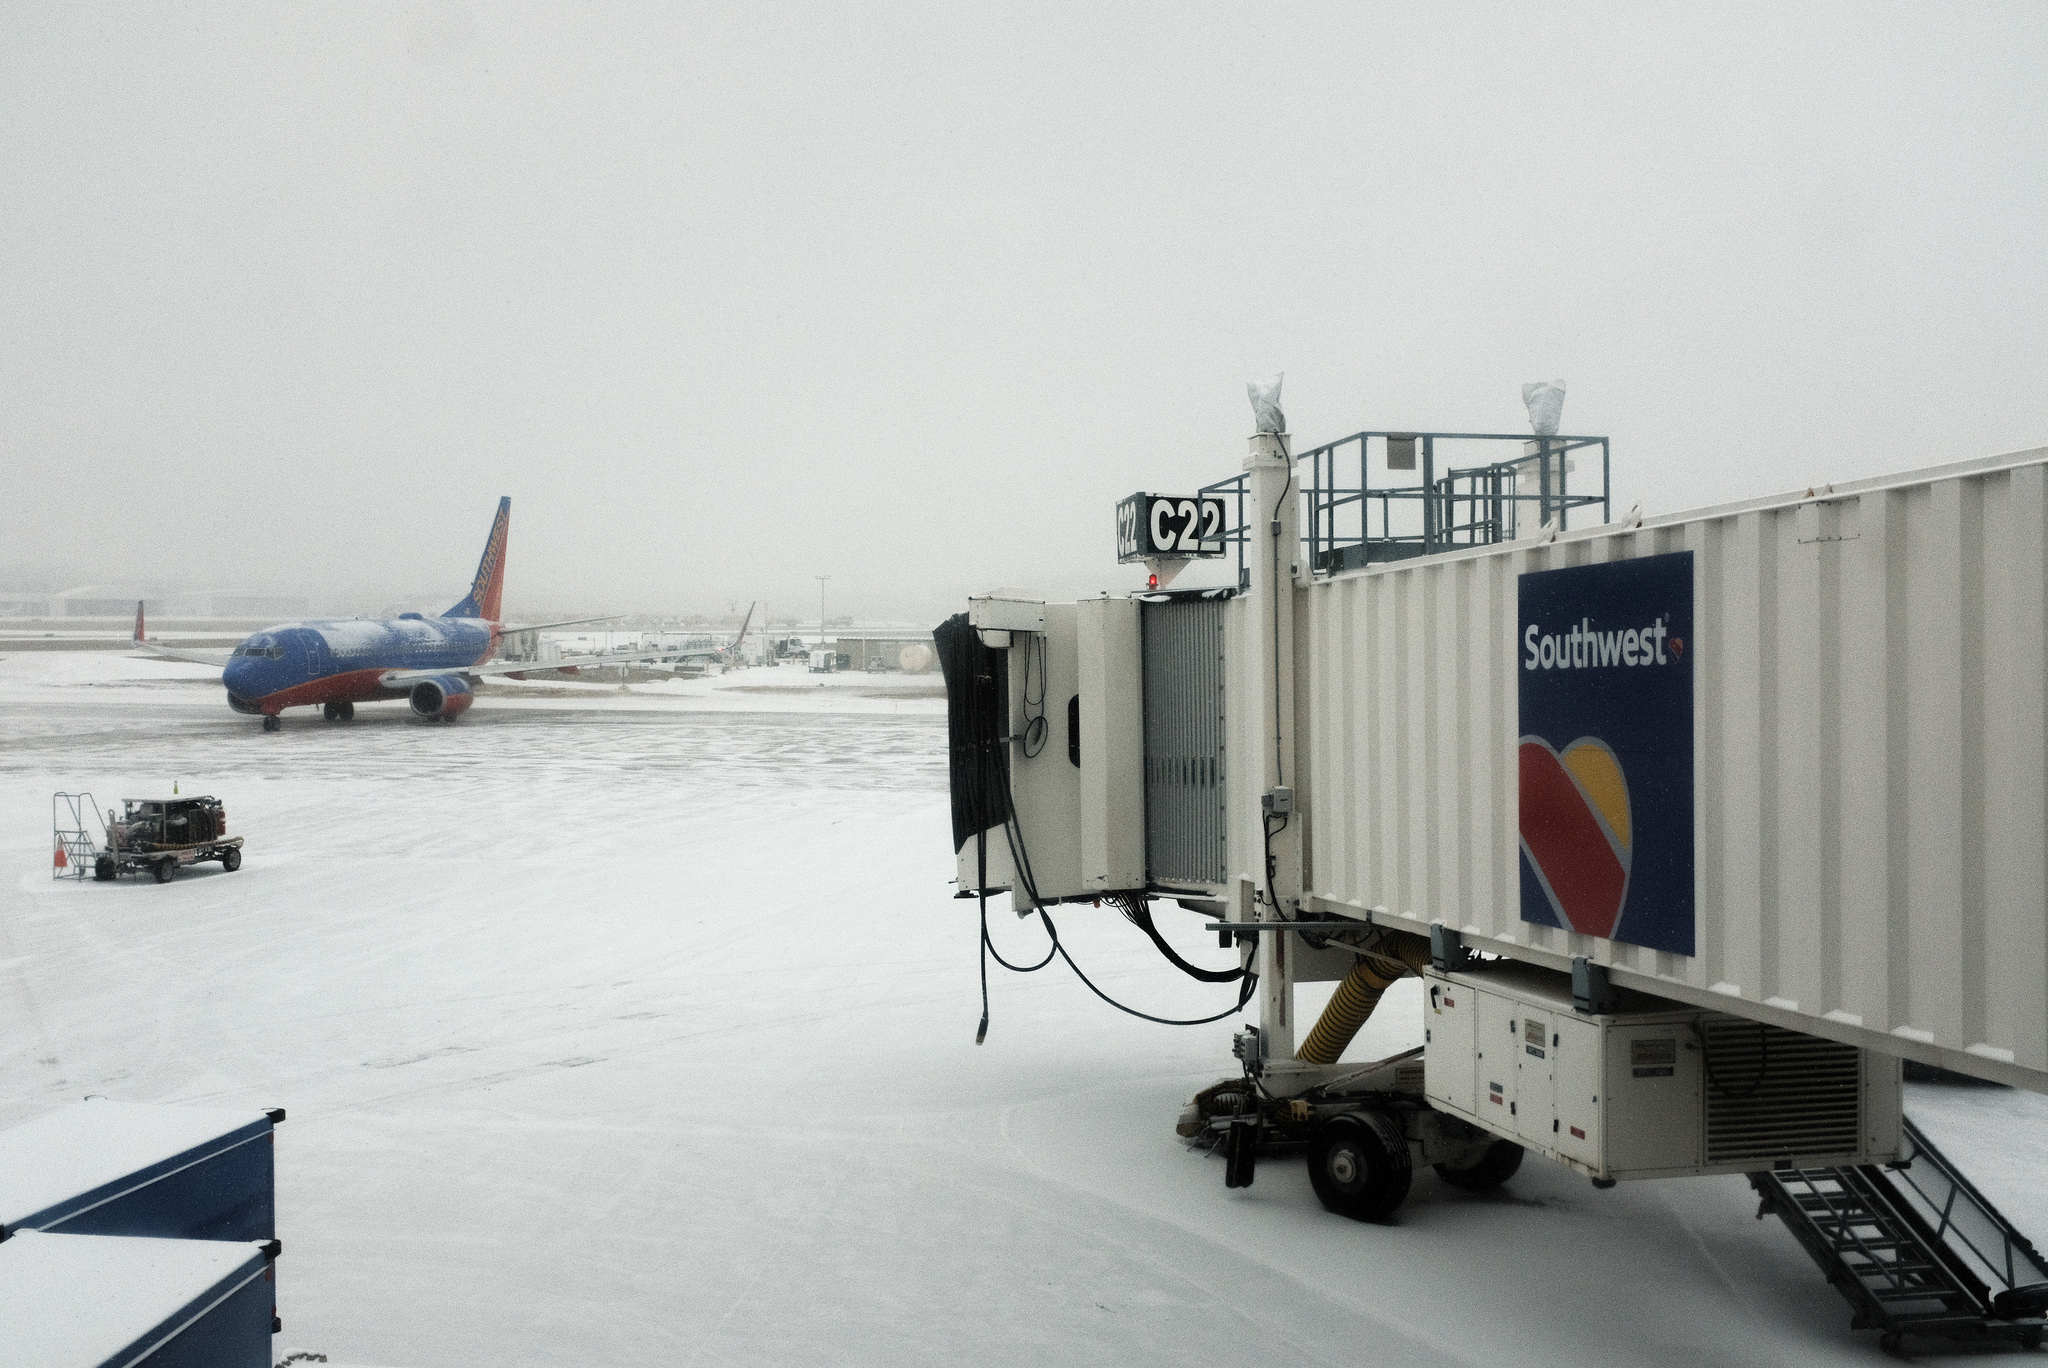 Wisconsin Airports Report Uptick In Penger Numbers ... on